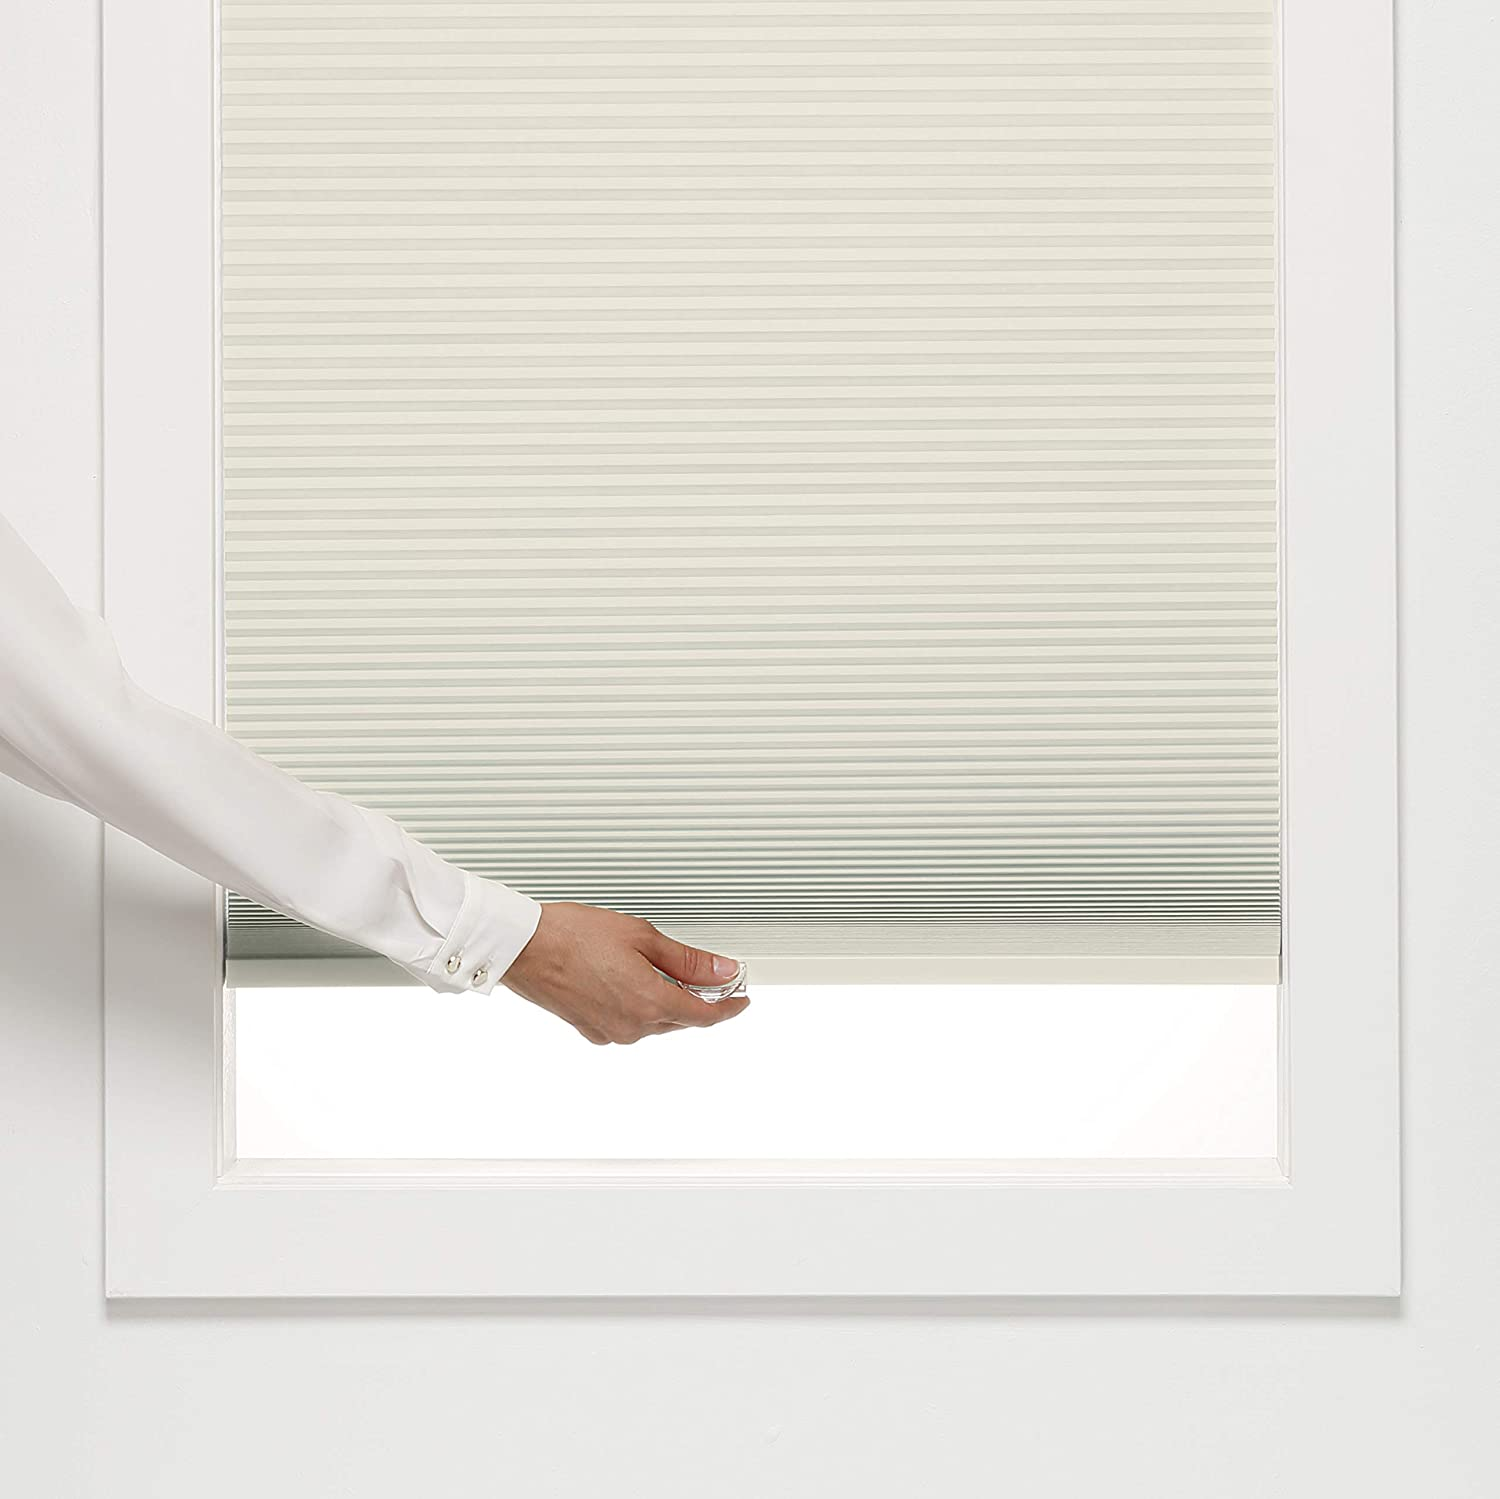 DEZ Furnishings QCCR220840 Cordless Light Filtering Cellular Shade Cream 22W x 84H Inches